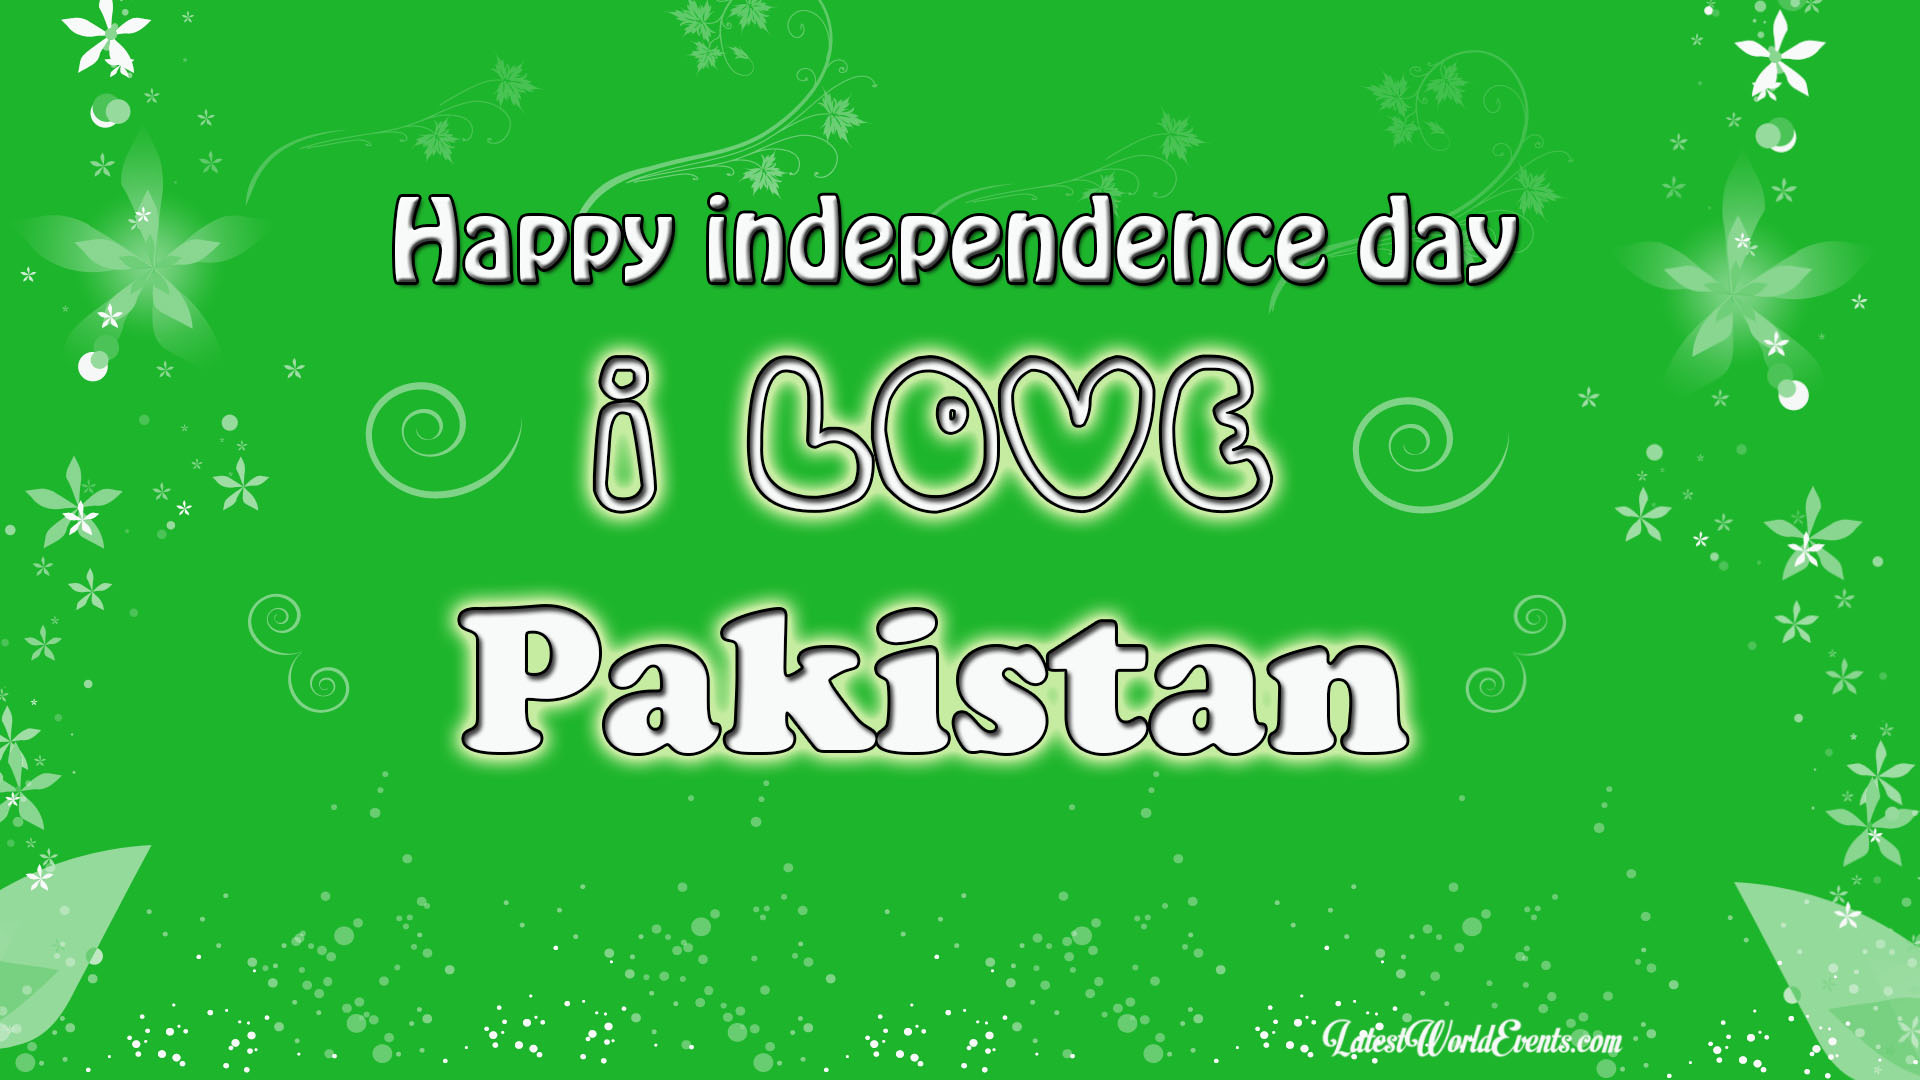 Happy independence day Pakistan images & 14th August